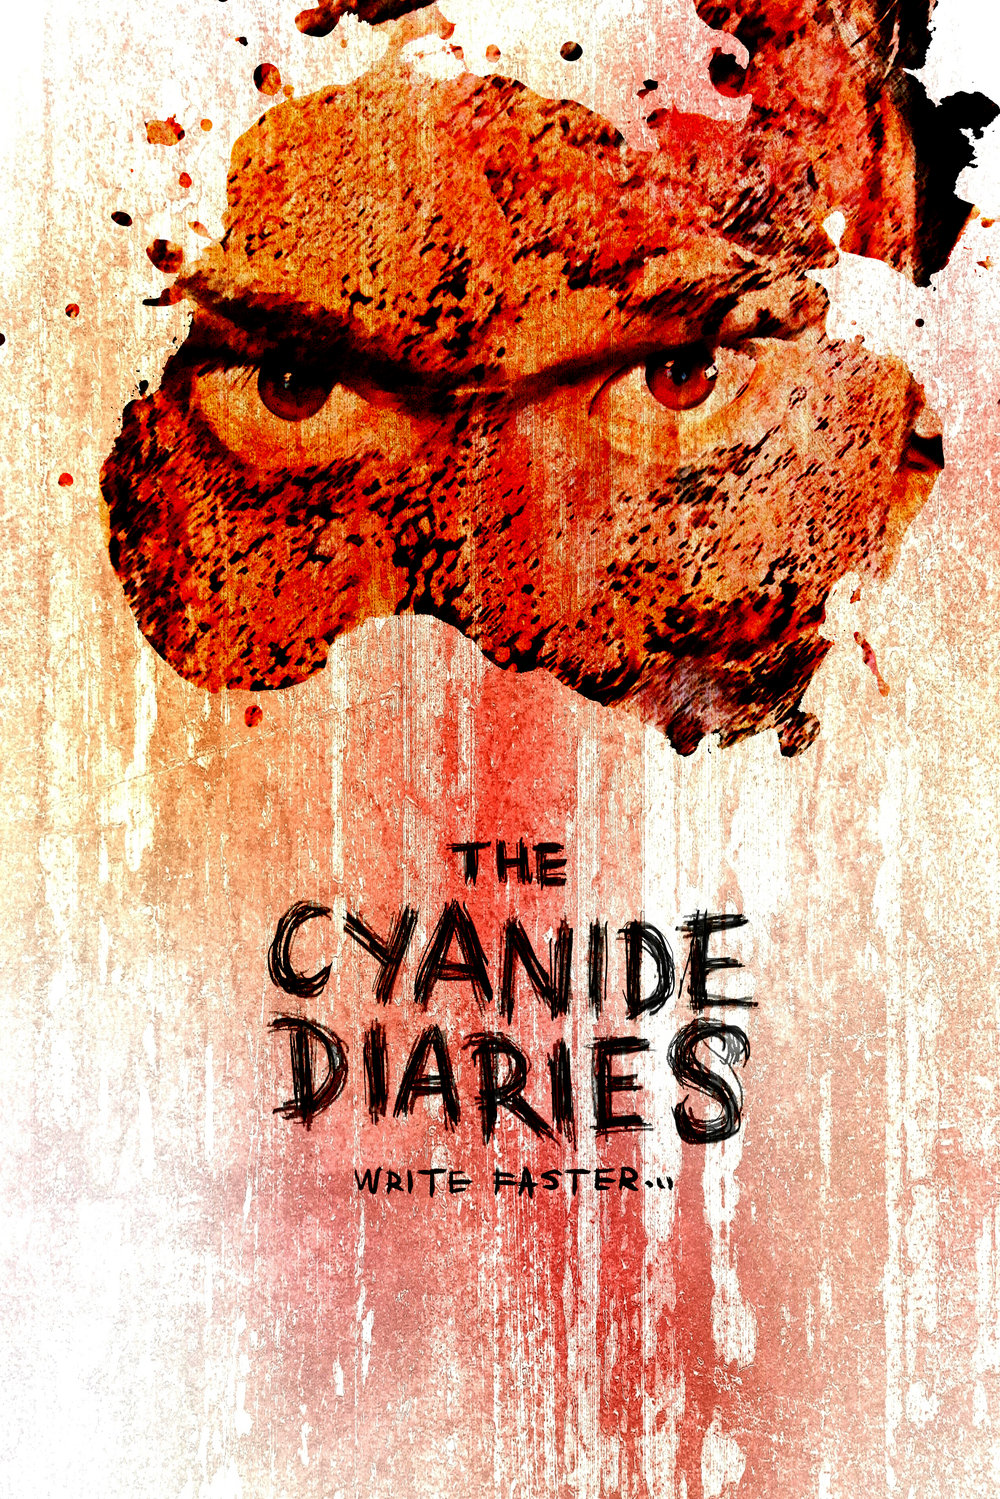 TRC_MoviePoster_CyanideDiaries_20%.jpg